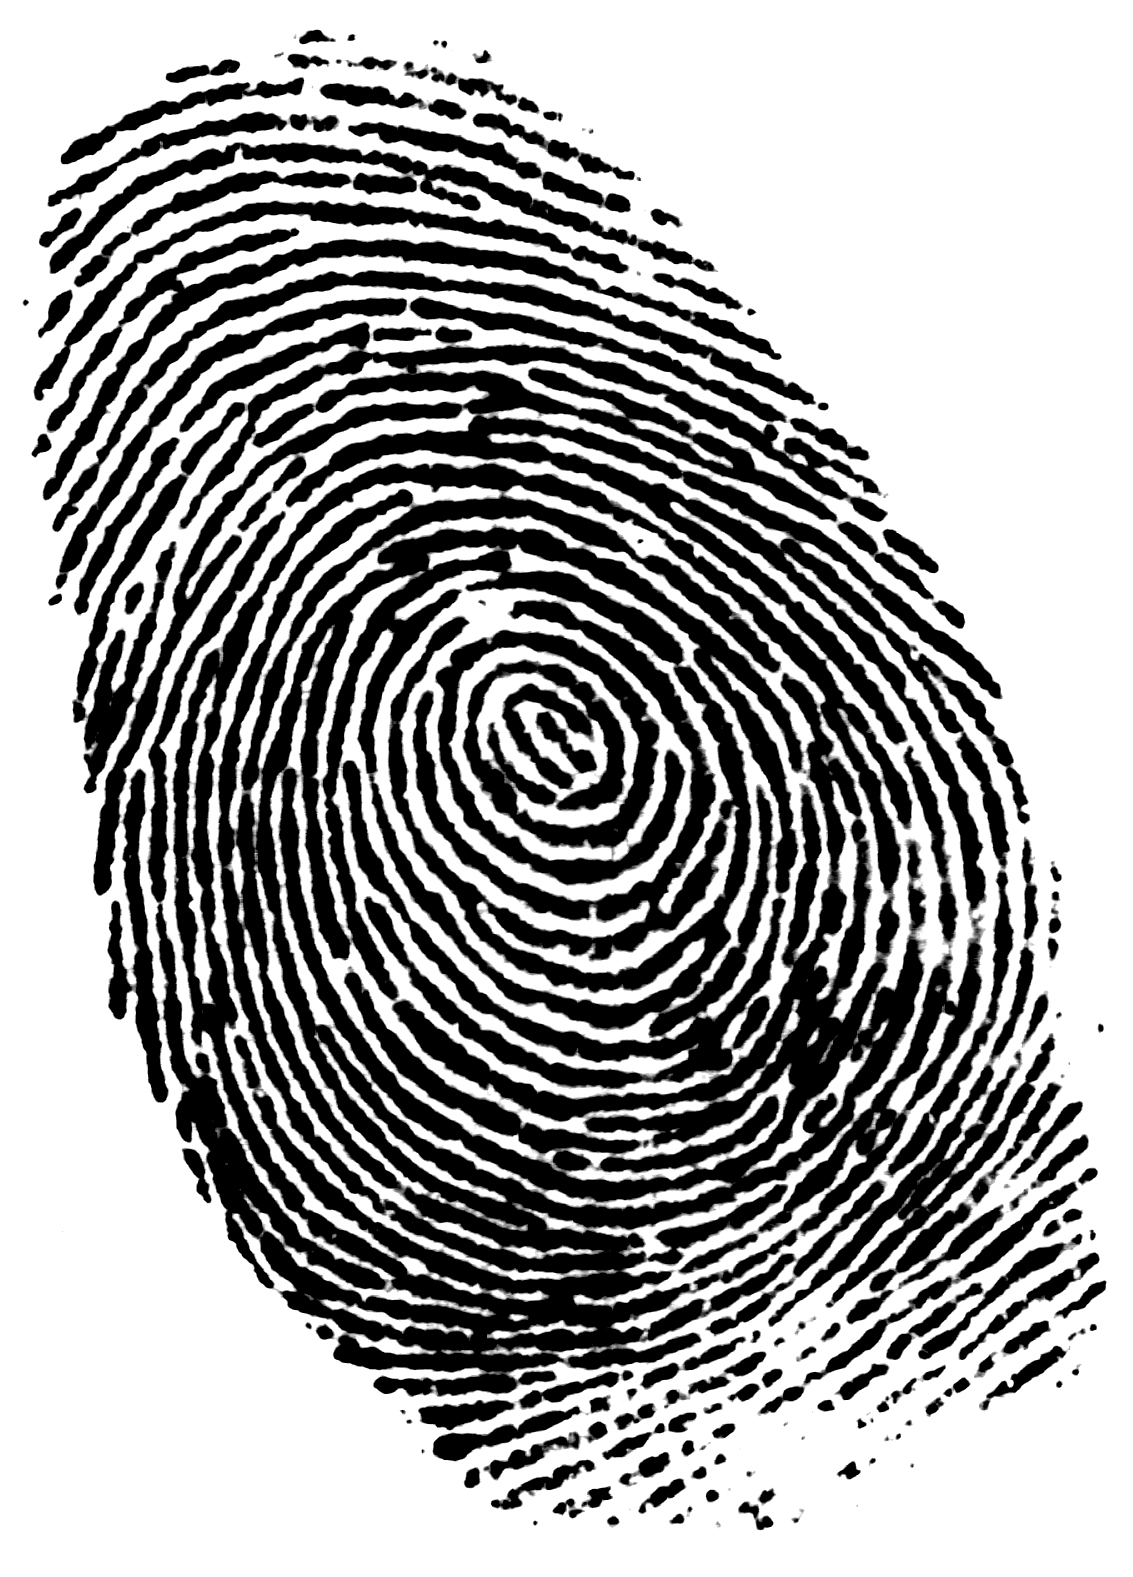 Almost a third of businesses plan to use biometric authentication for